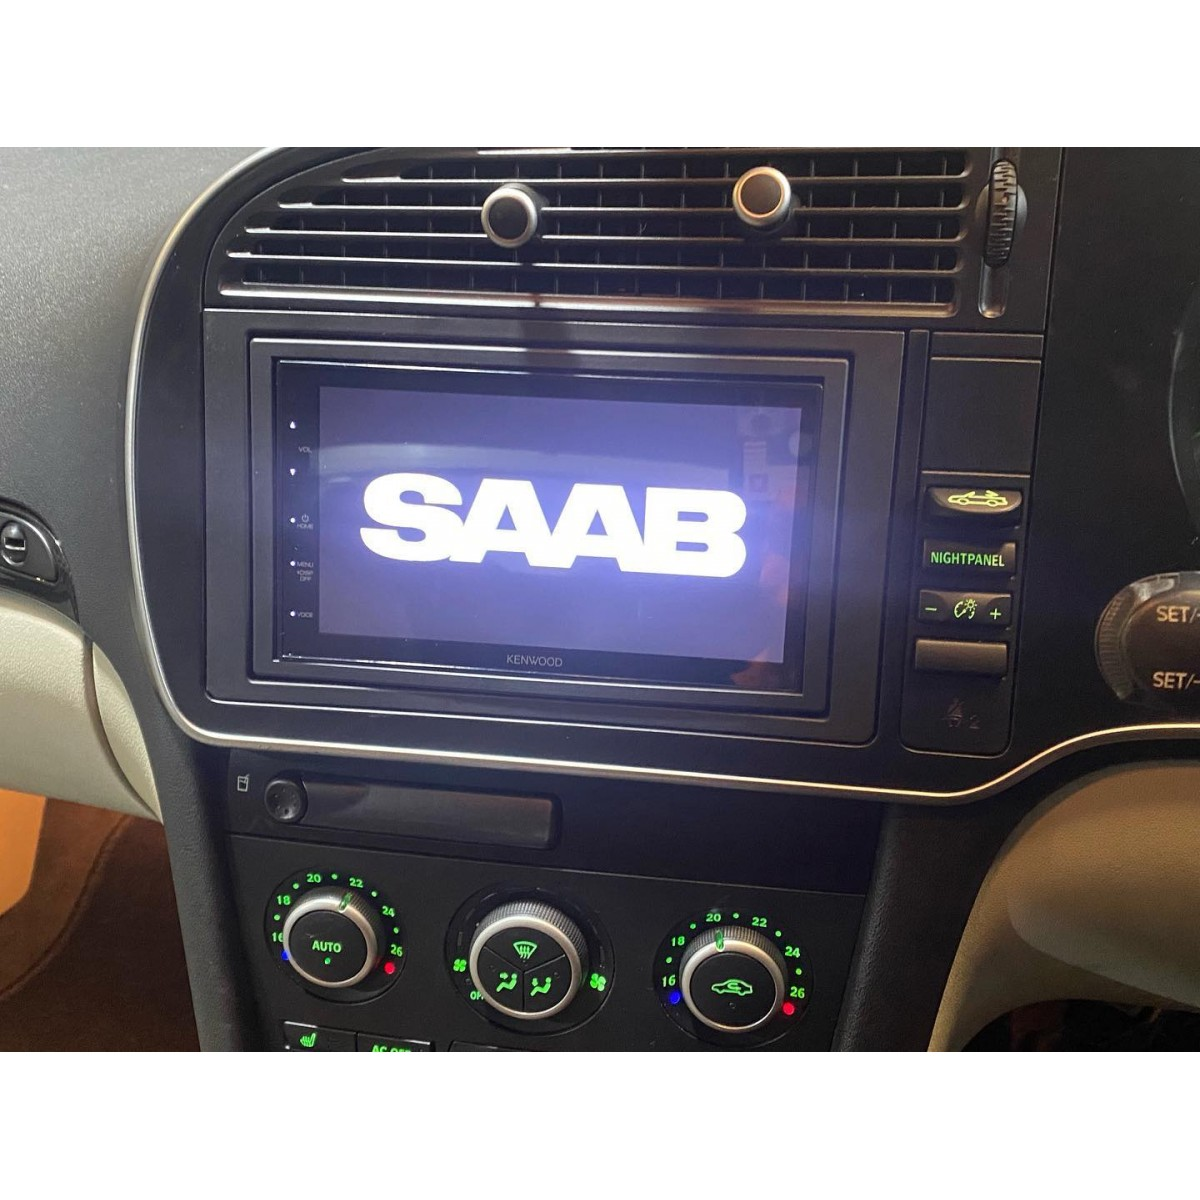 Technology update for younger Saabs